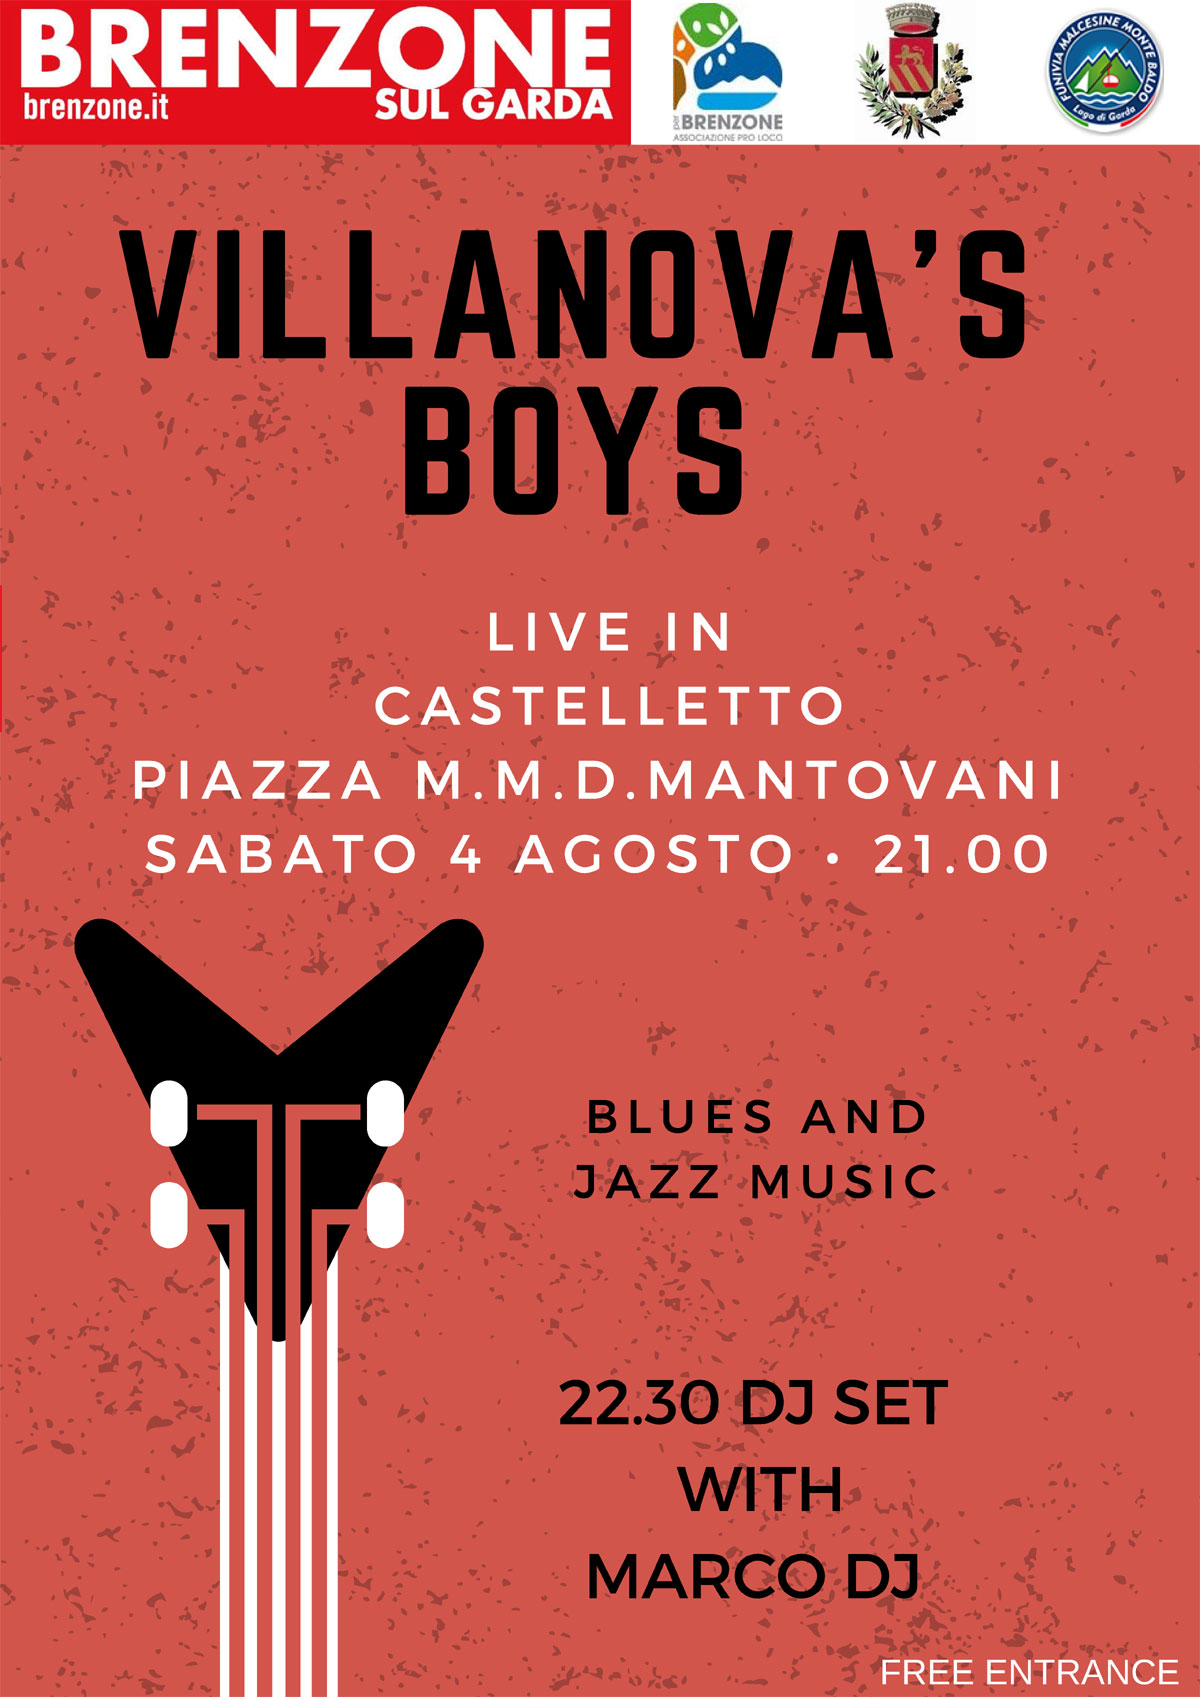 Villanova's boys - concert on 05.07.2018